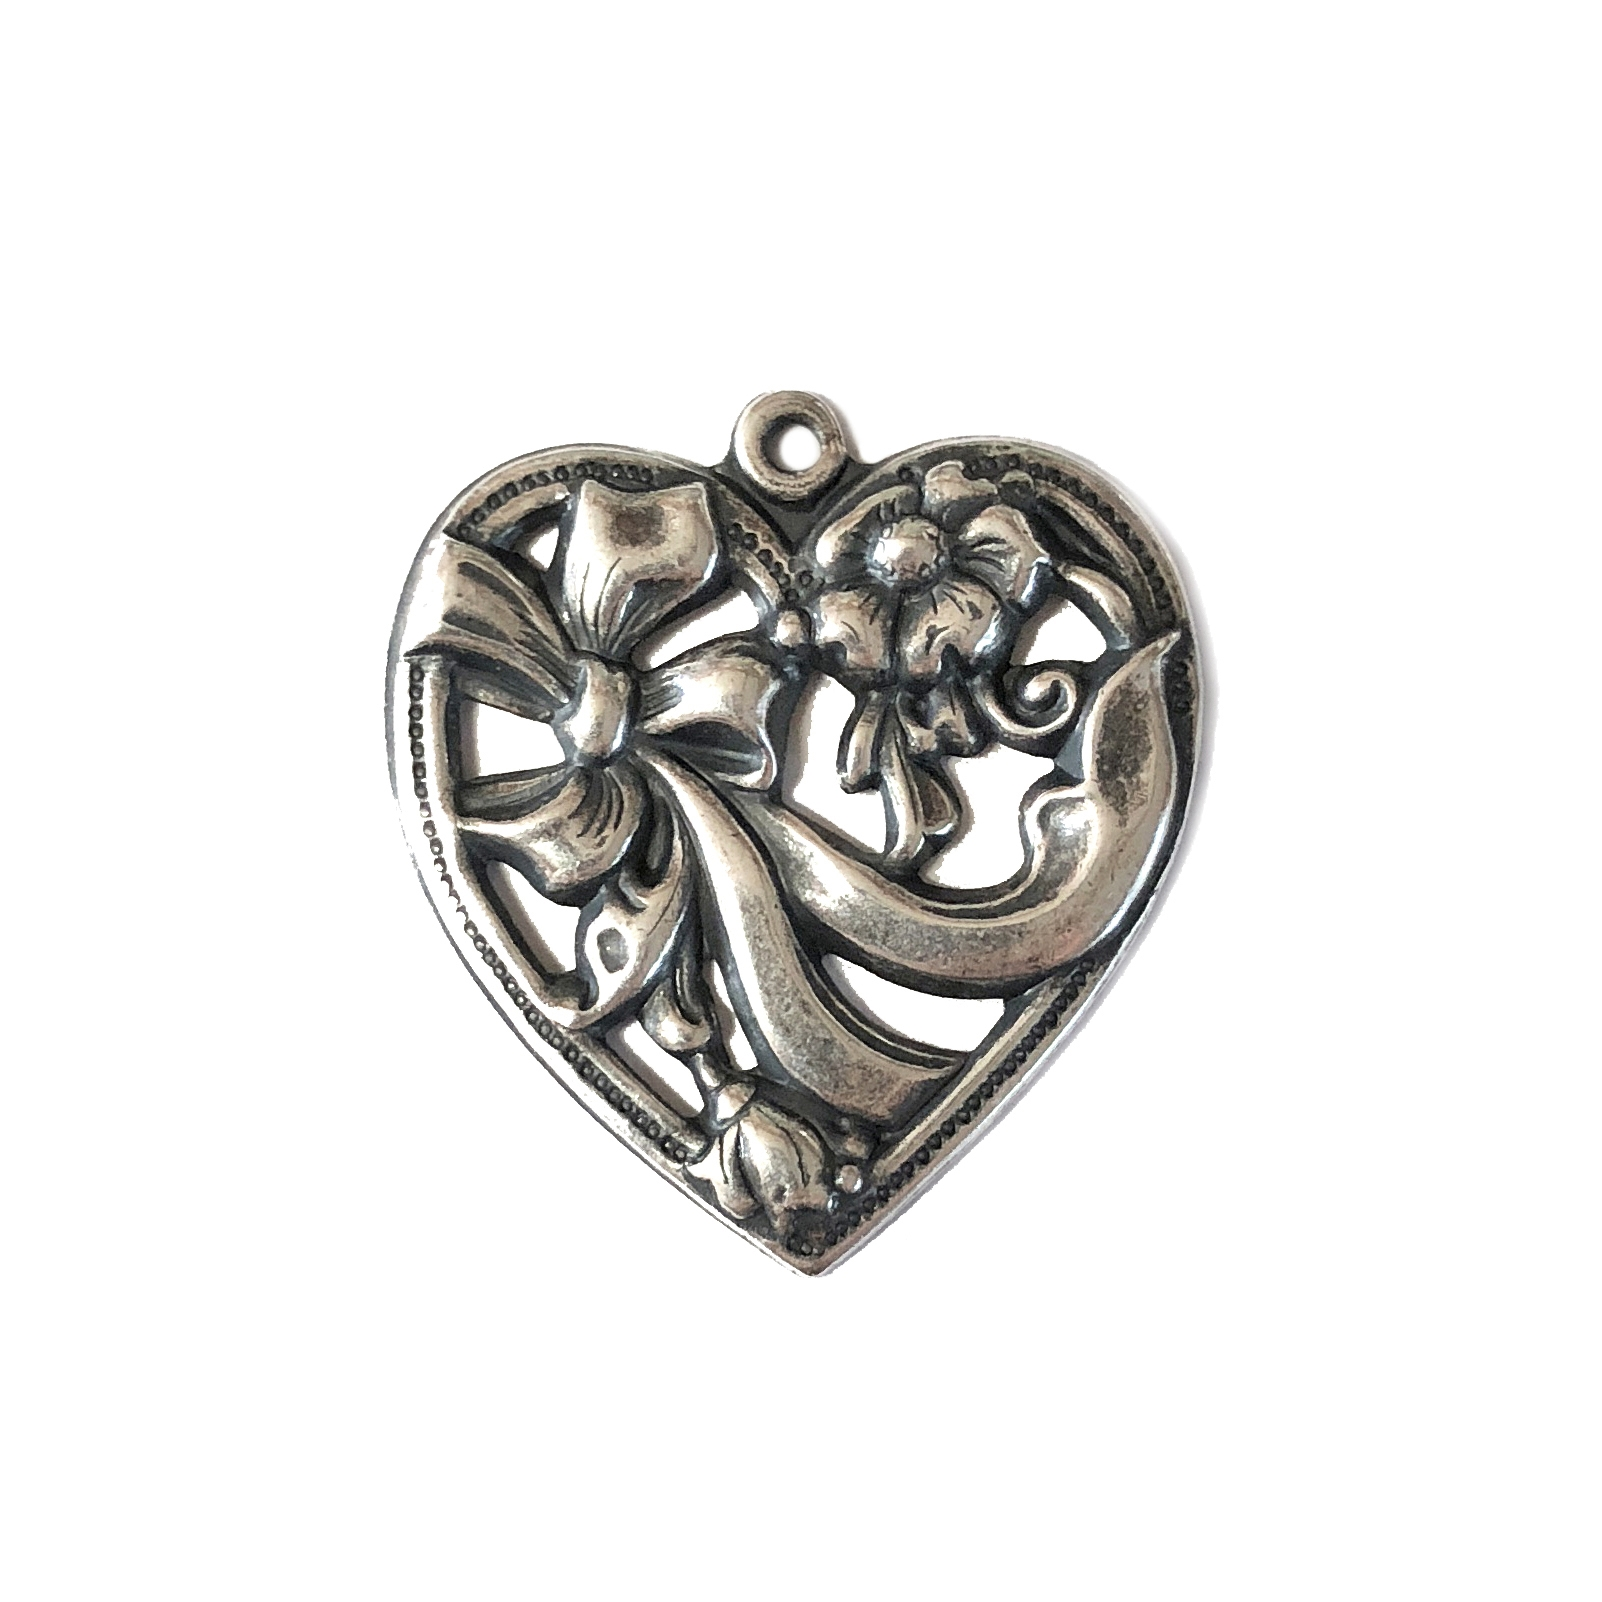 heart with bow pendant, silverware silverplate, charm, pendant, antique silver, silver heart, heart, bow, silverware, silverplate, US made, nickel free, 29x27mm, jewelry making, jewelry heart, vintage supplies, jewelry supplies, jewelry findings, 04450